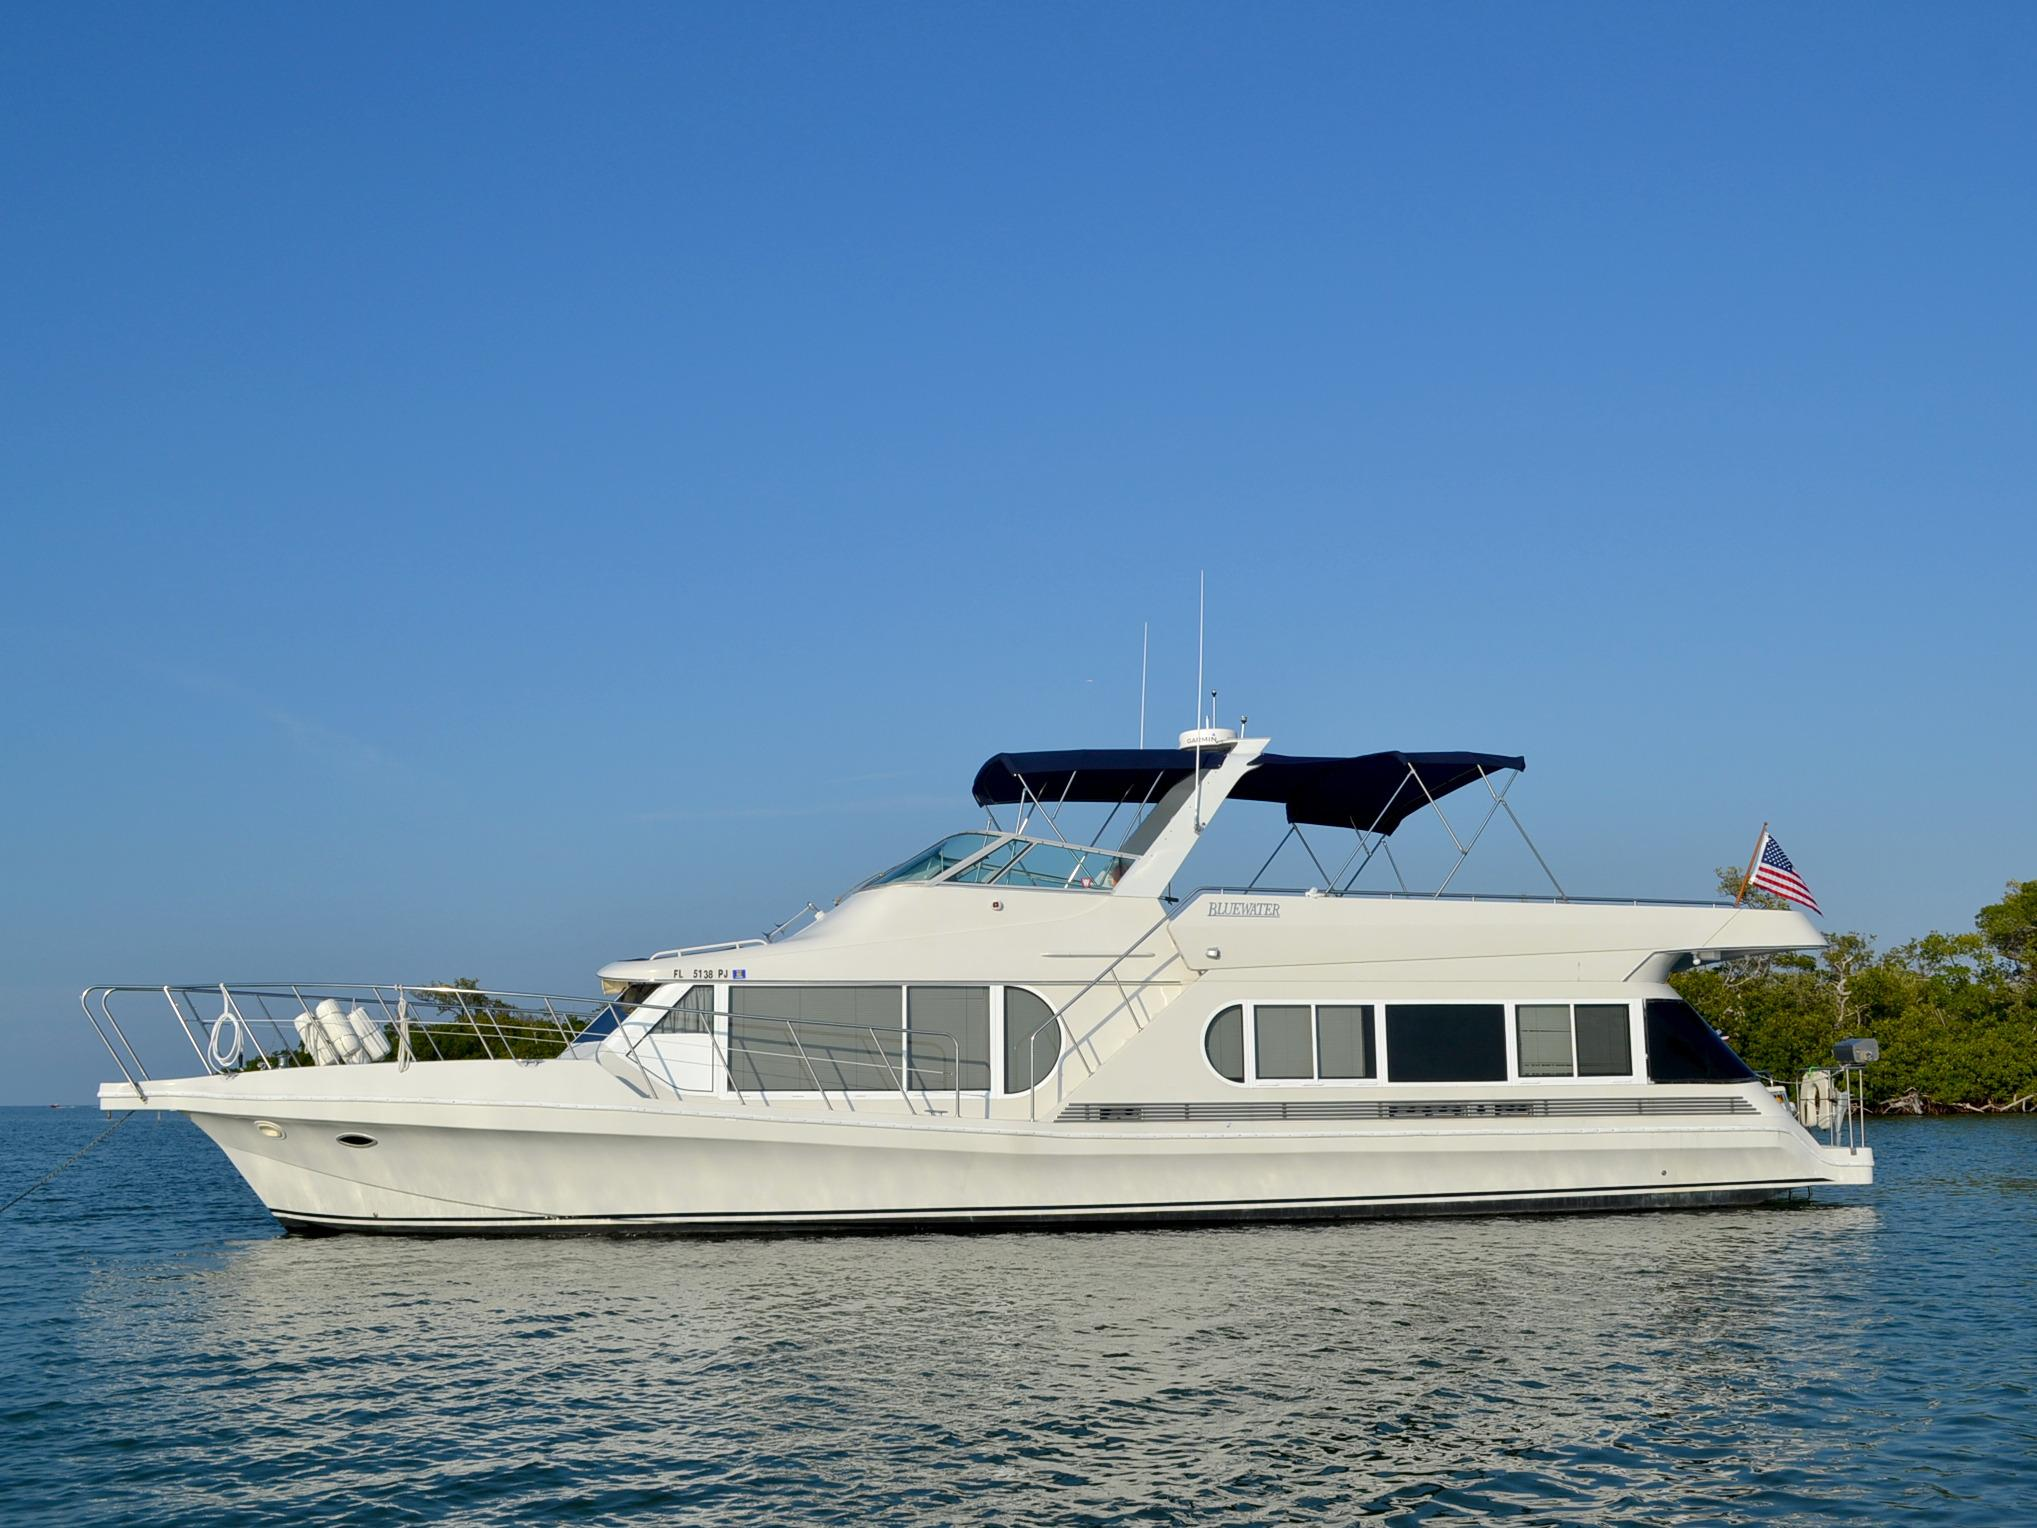 1995 Bluewater Coastal Cruiser Power Boat For Sale Www